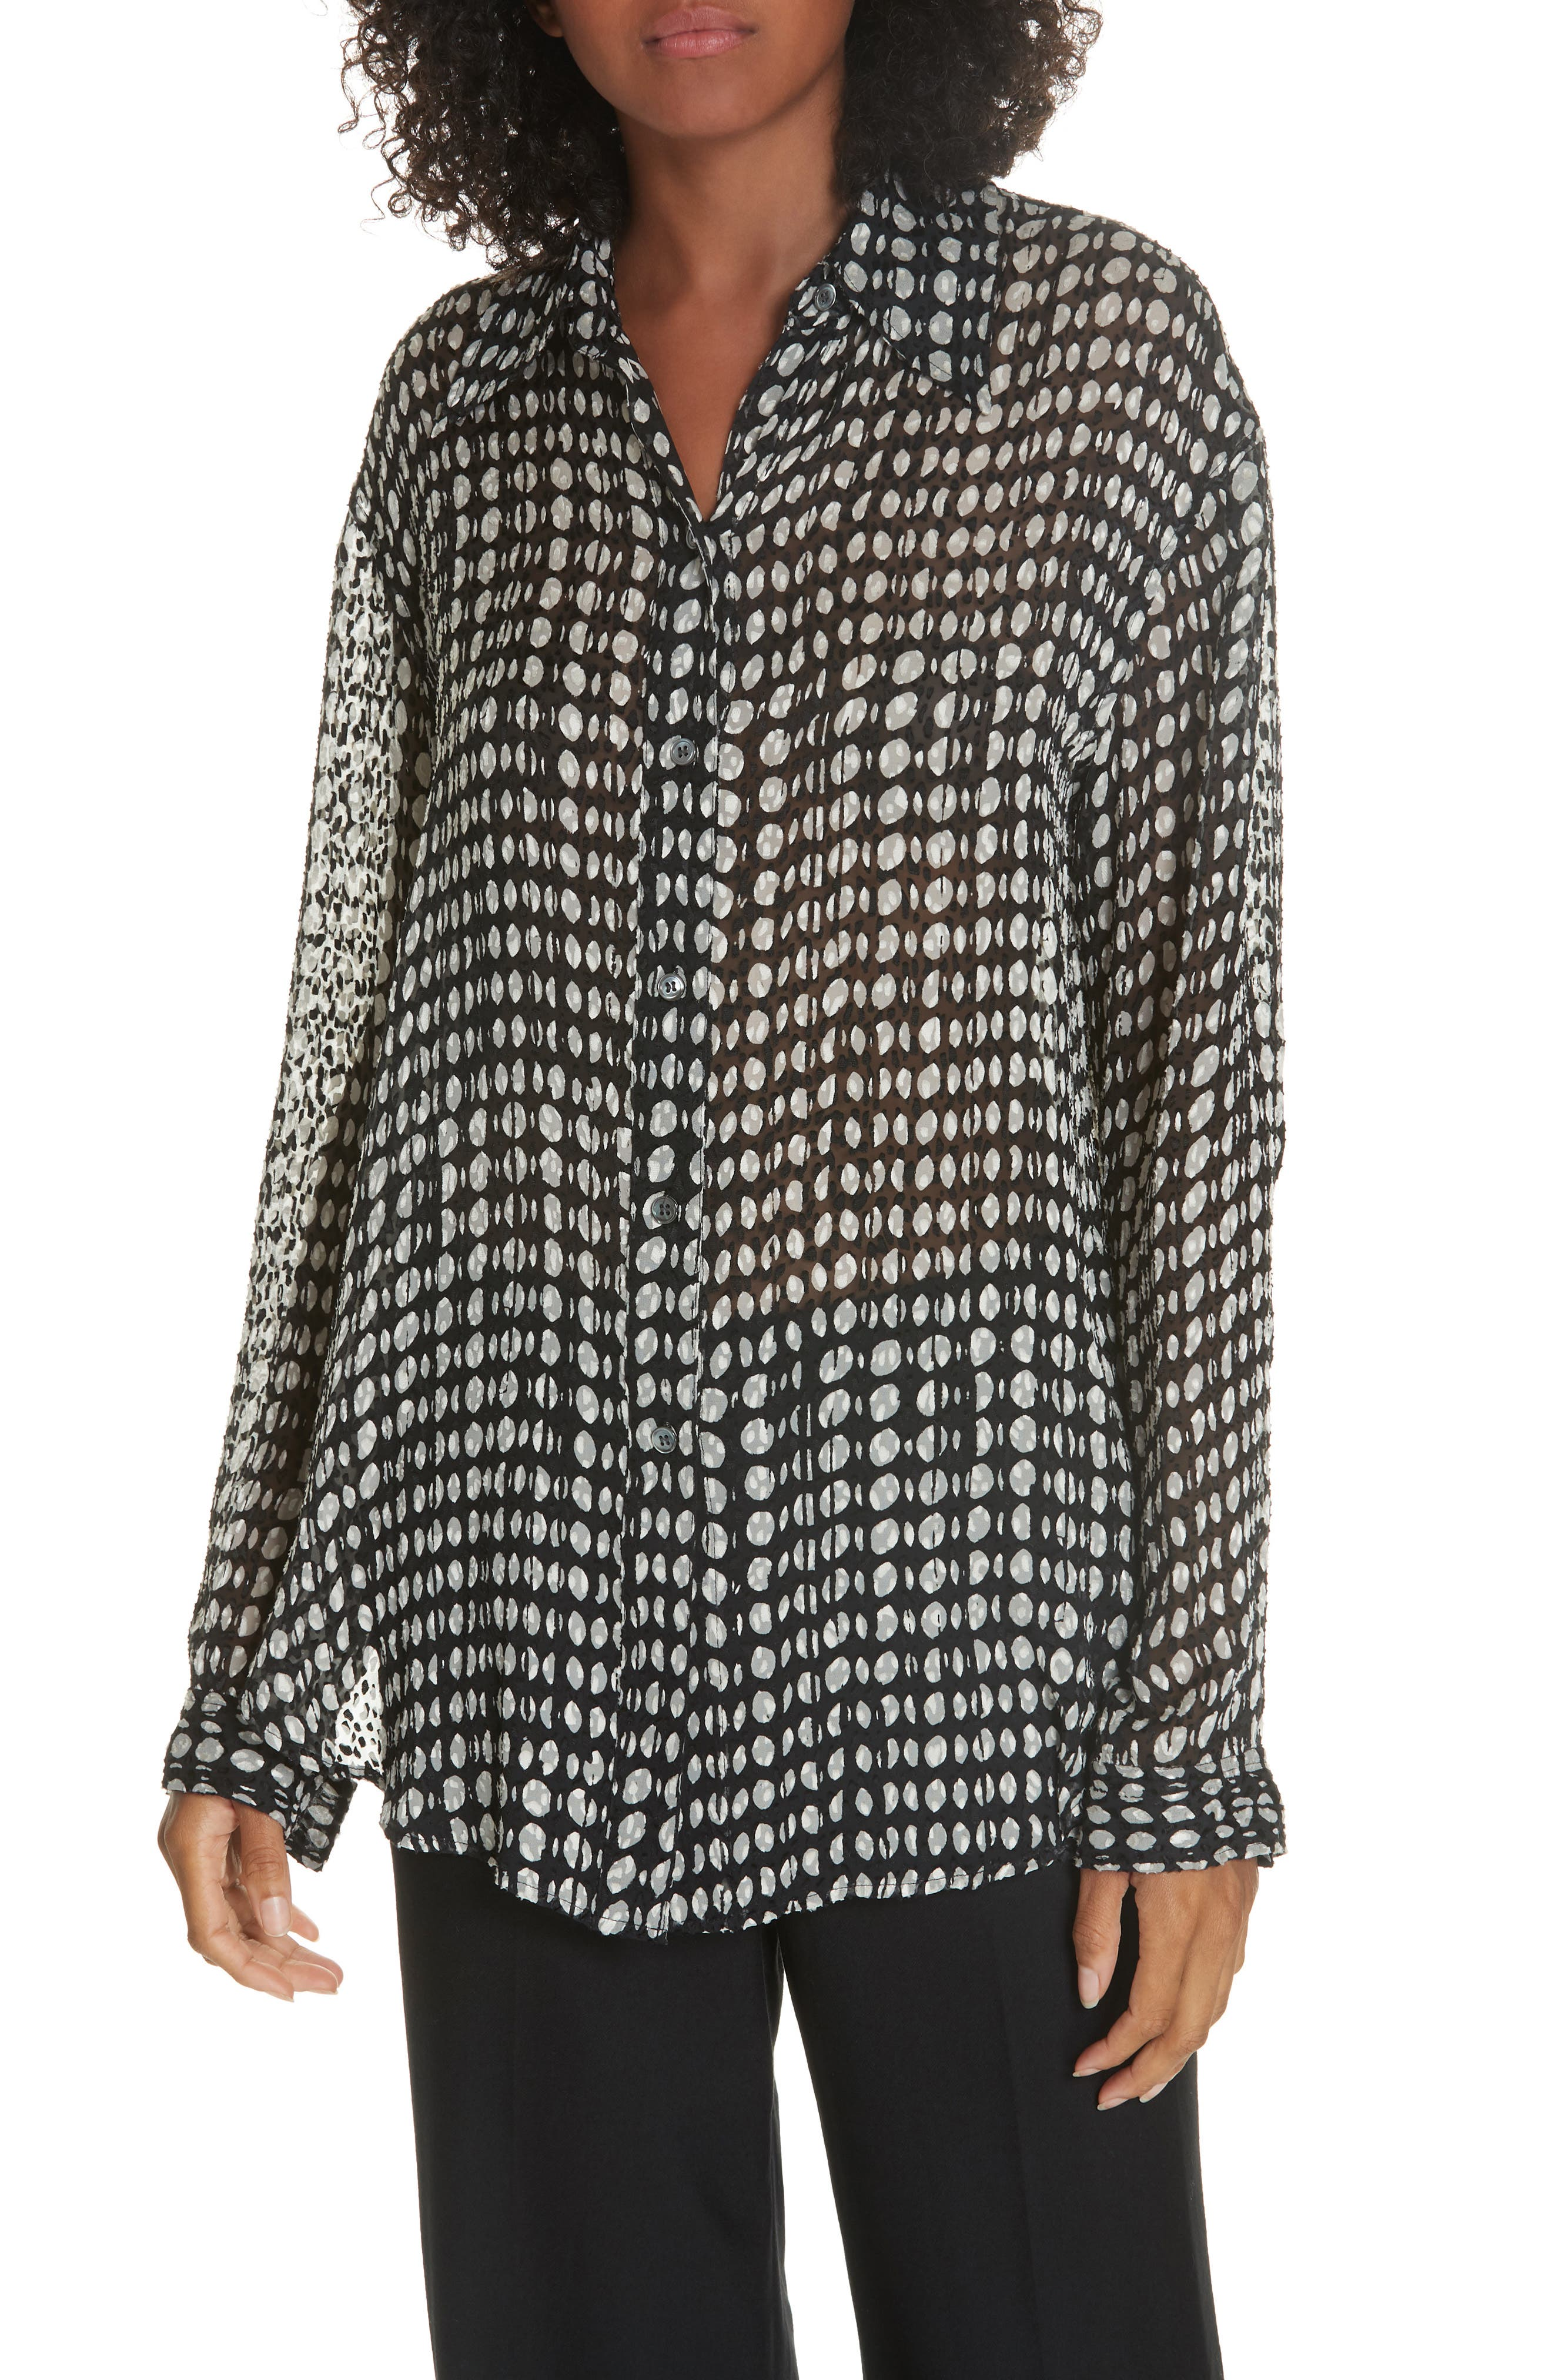 THEORY Broken Oval Blouse, Main, color, 001